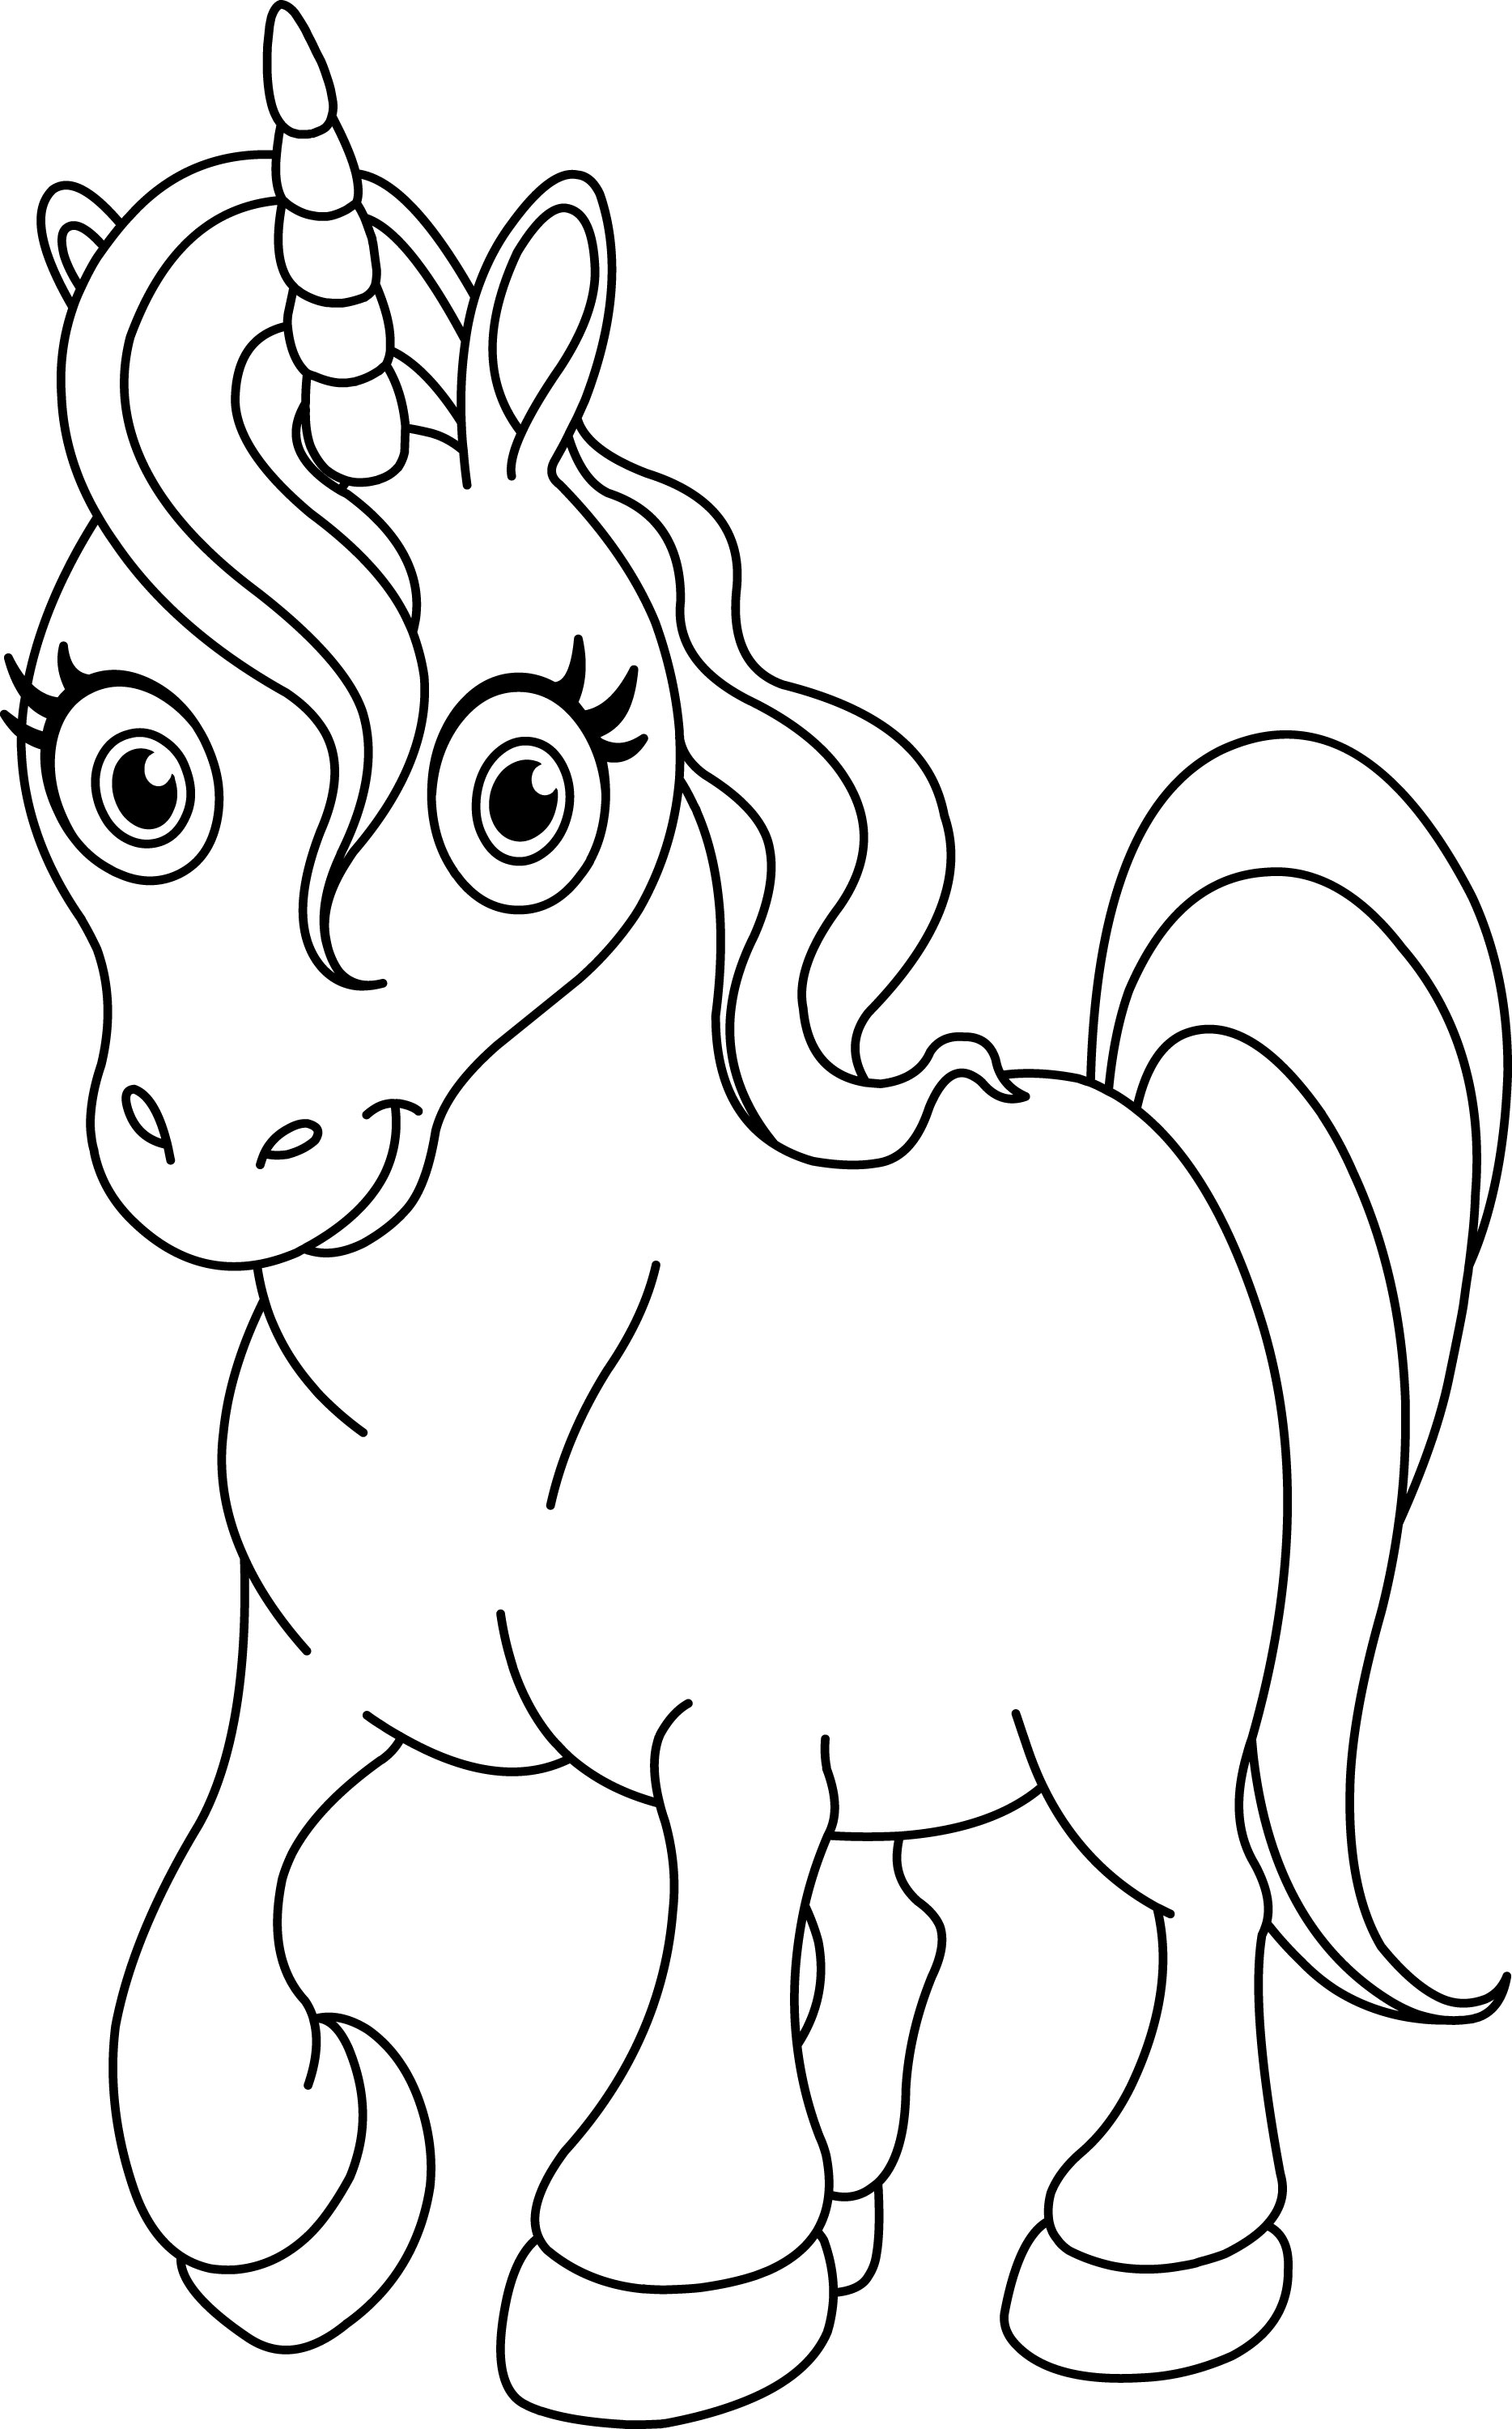 unicorn to color free printable unicorn coloring pages for kids to unicorn color